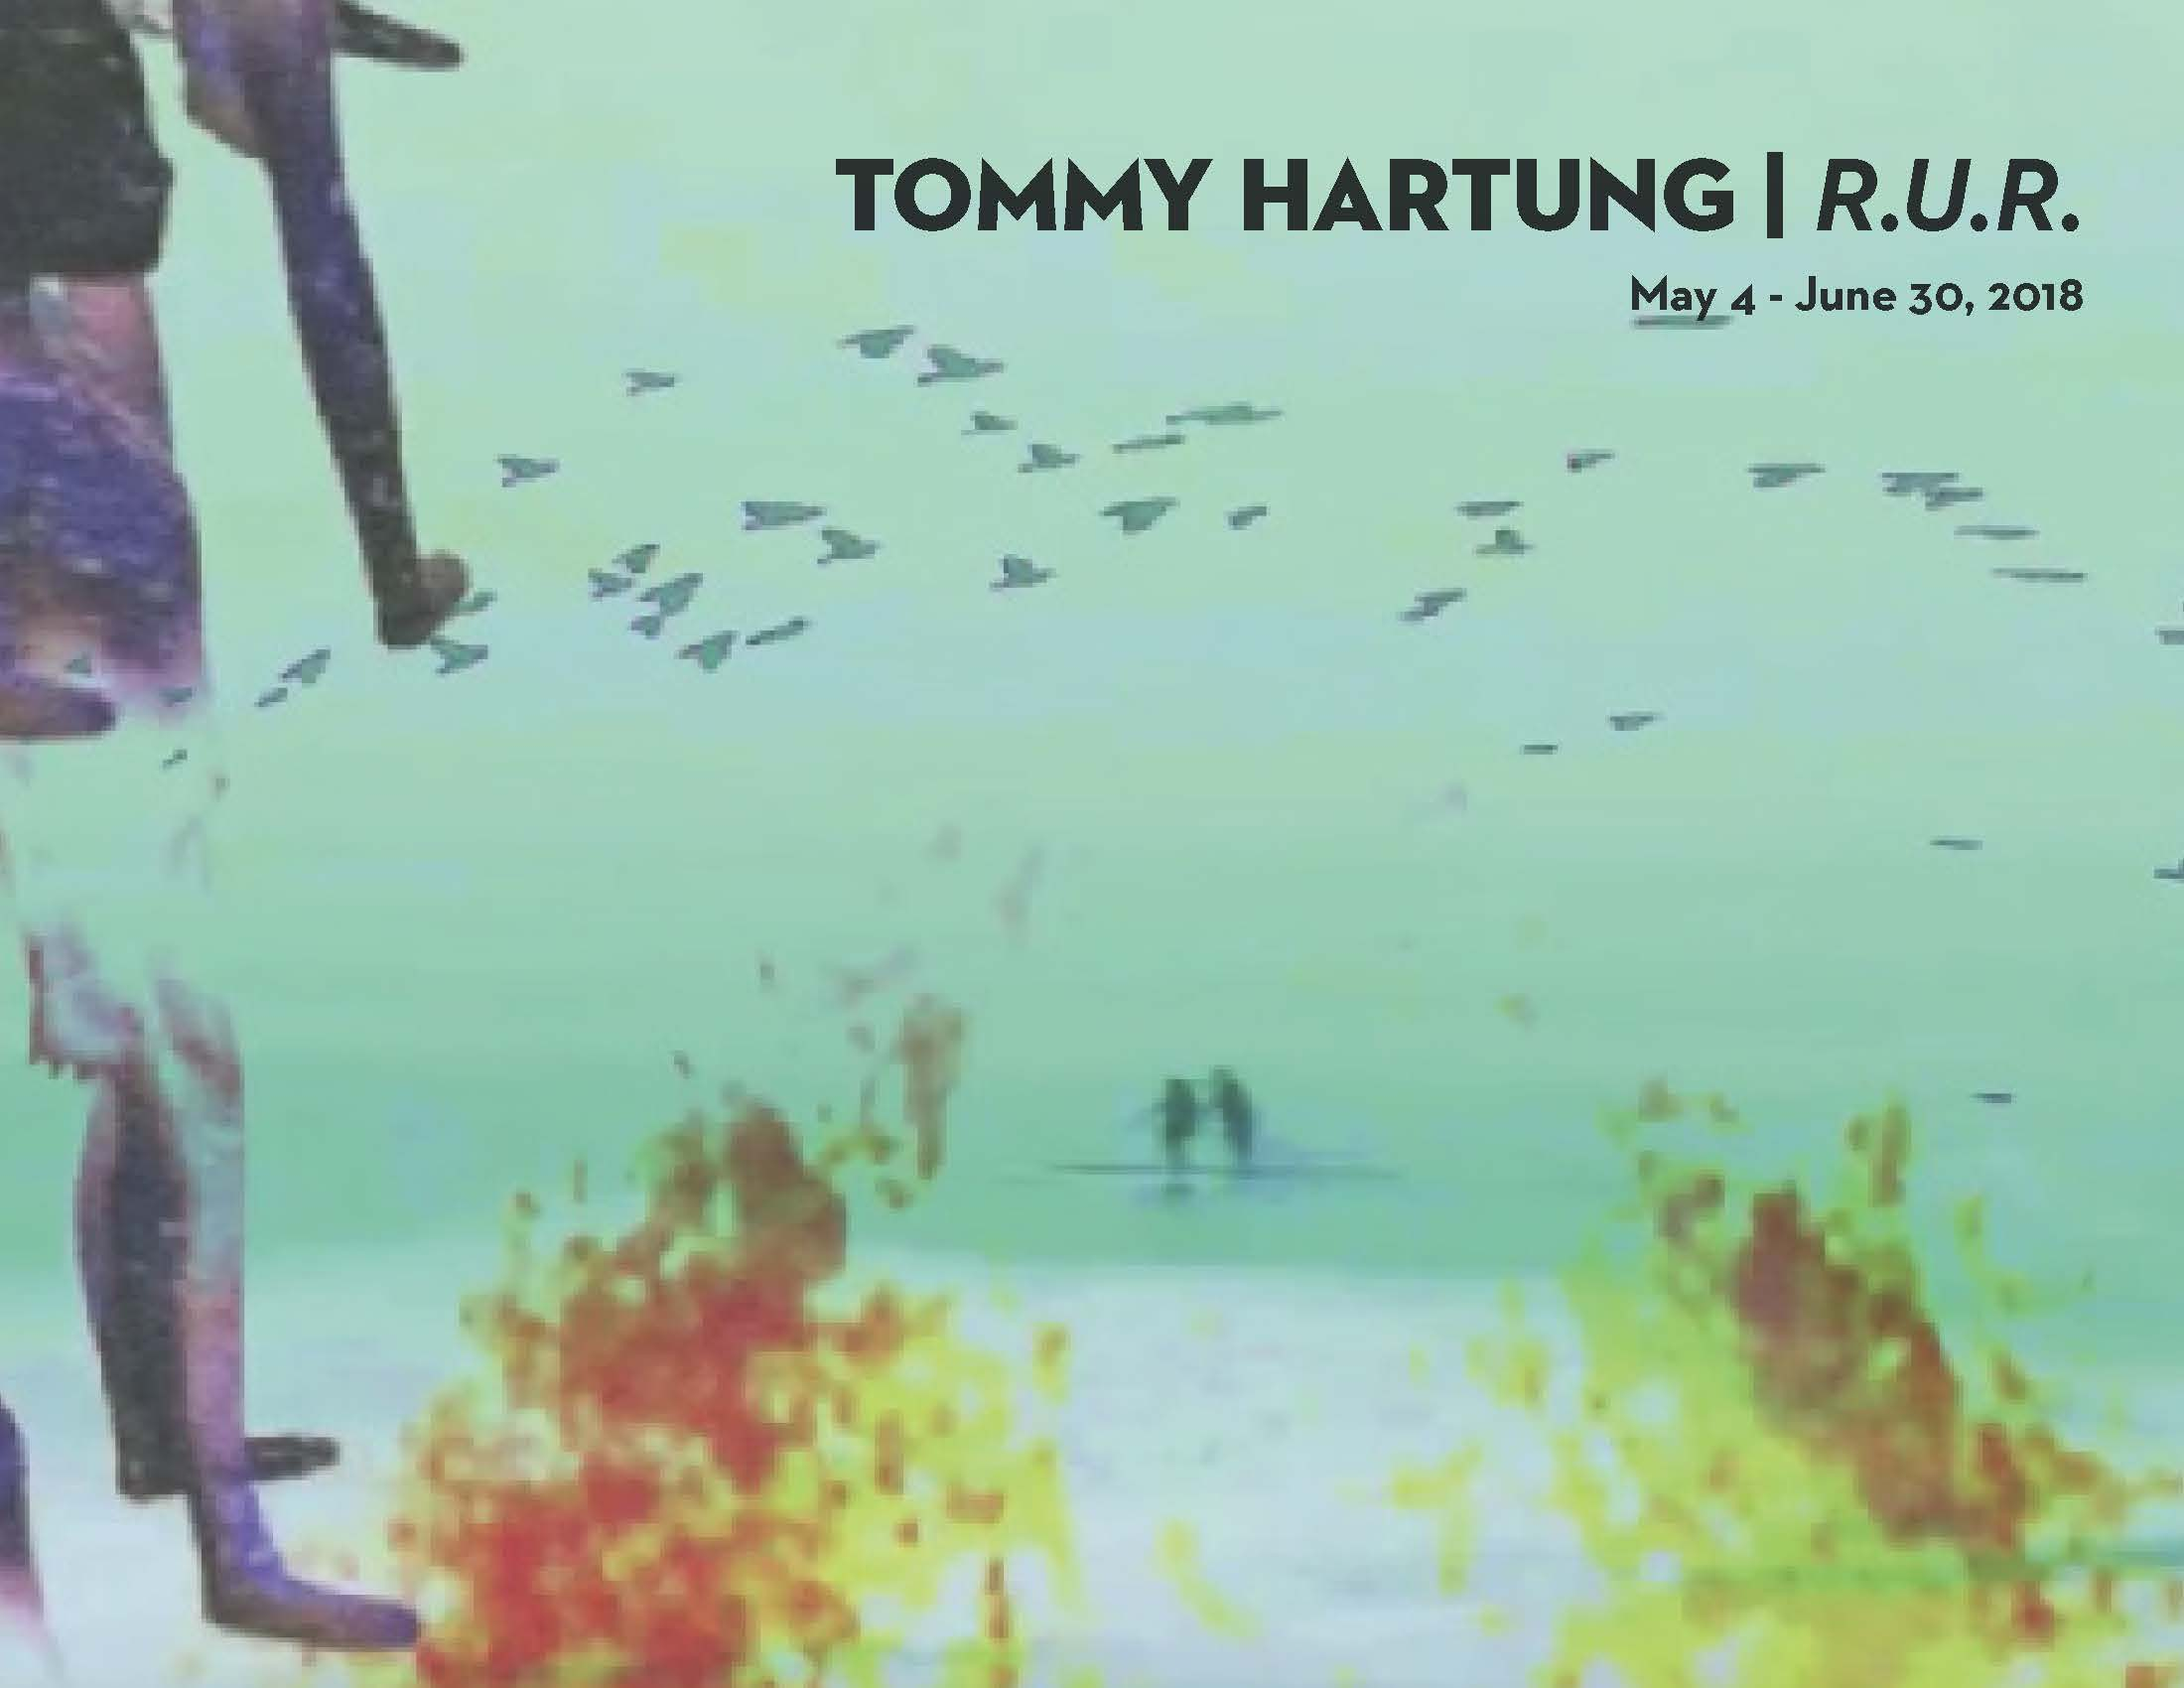 Tommy Hartung R.U.R Exhibition at C24 Contemporary Art Gallery in Chelsea NYC